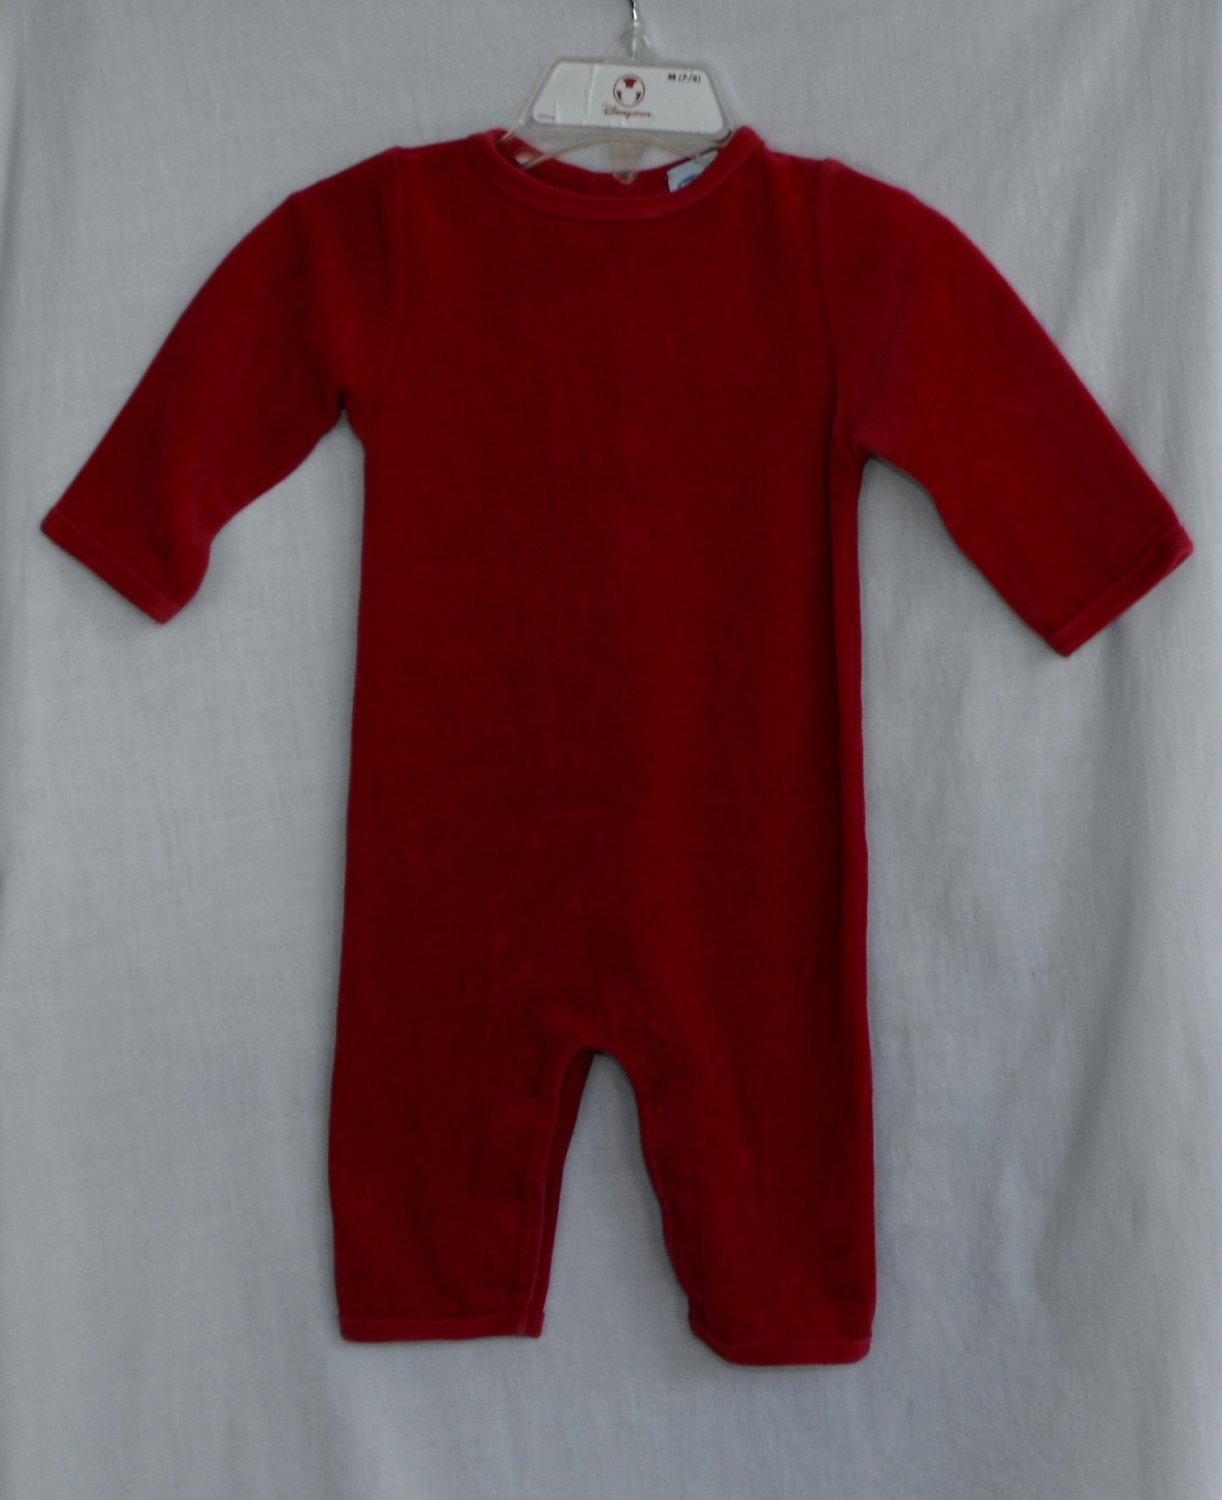 Old Navy Baby Red Velour Romper 3-6 Months